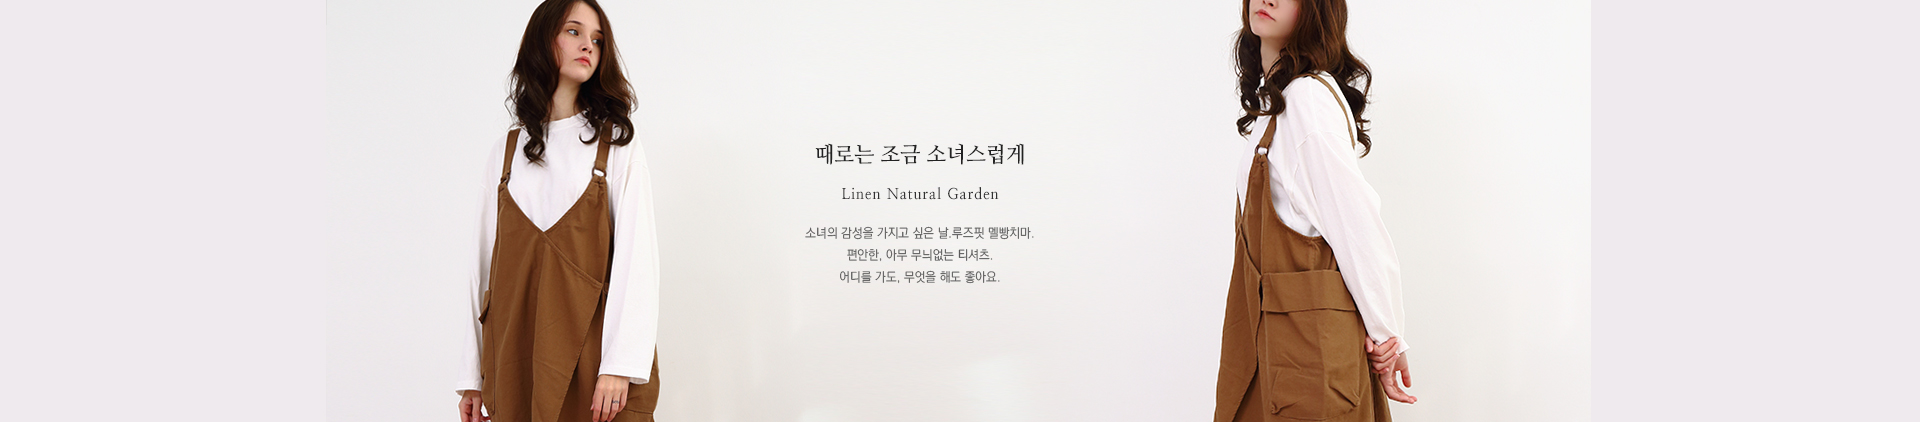 http://linennatural.com/product/detail.html?product_no=8334&cate_no=142&display_group=1